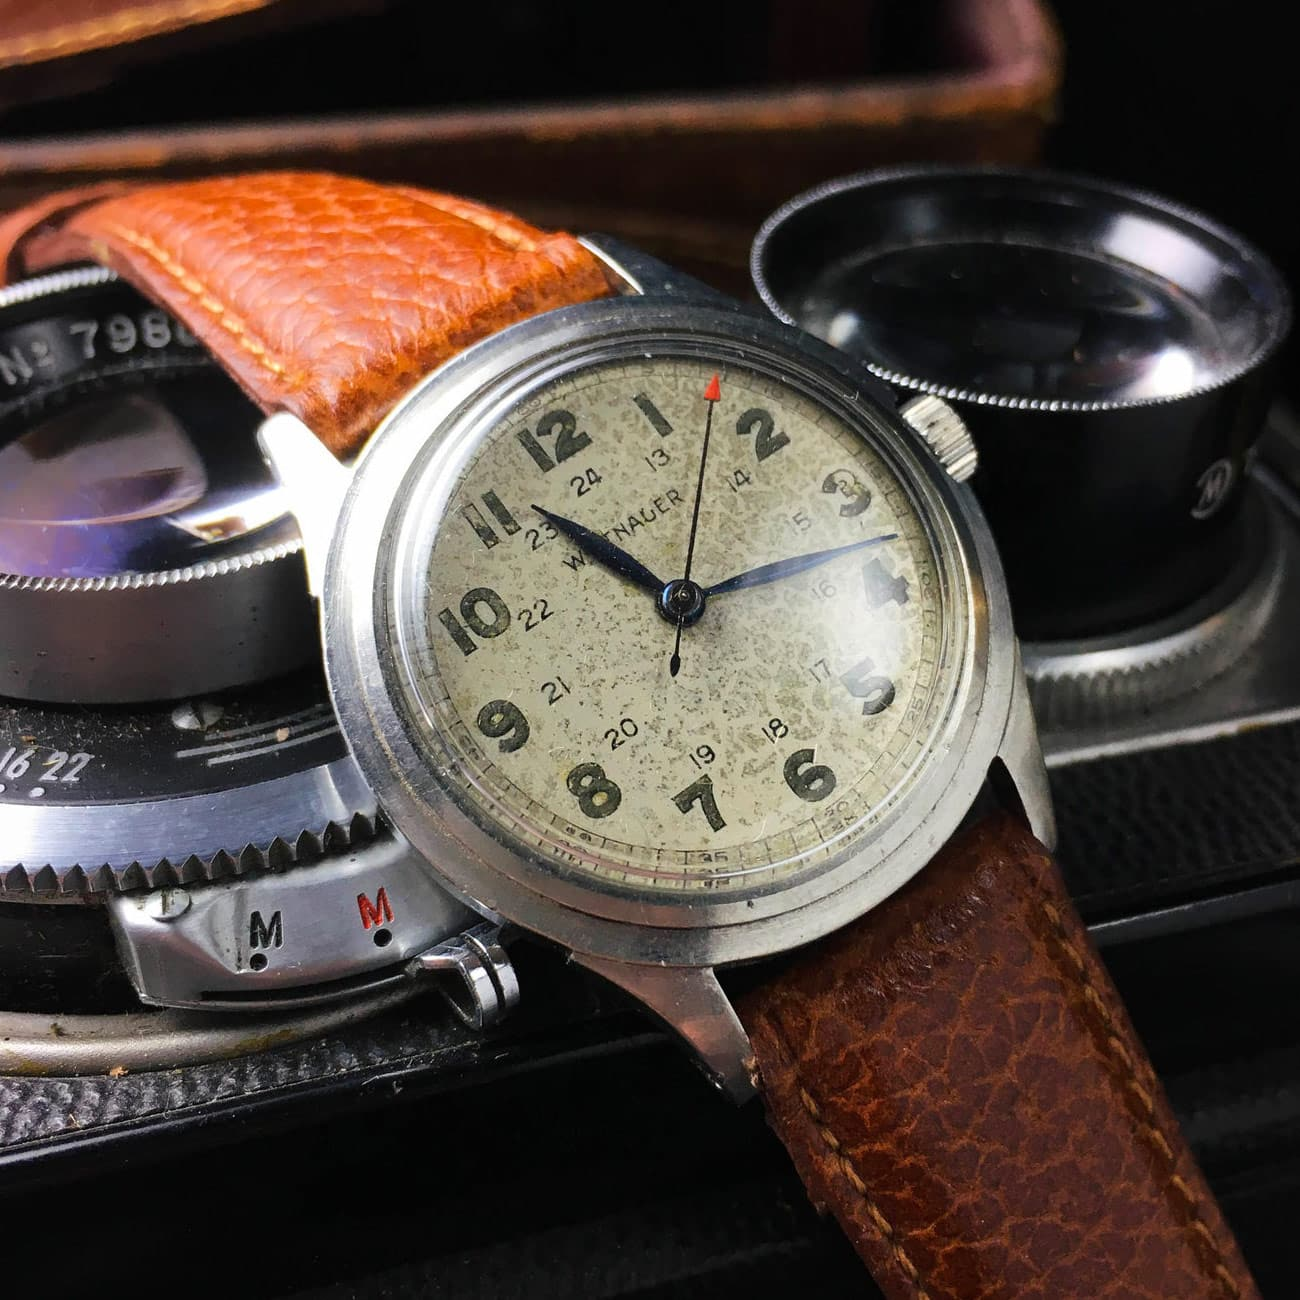 c8cb9e538aa An inner 24-hour scale was once common on military watches